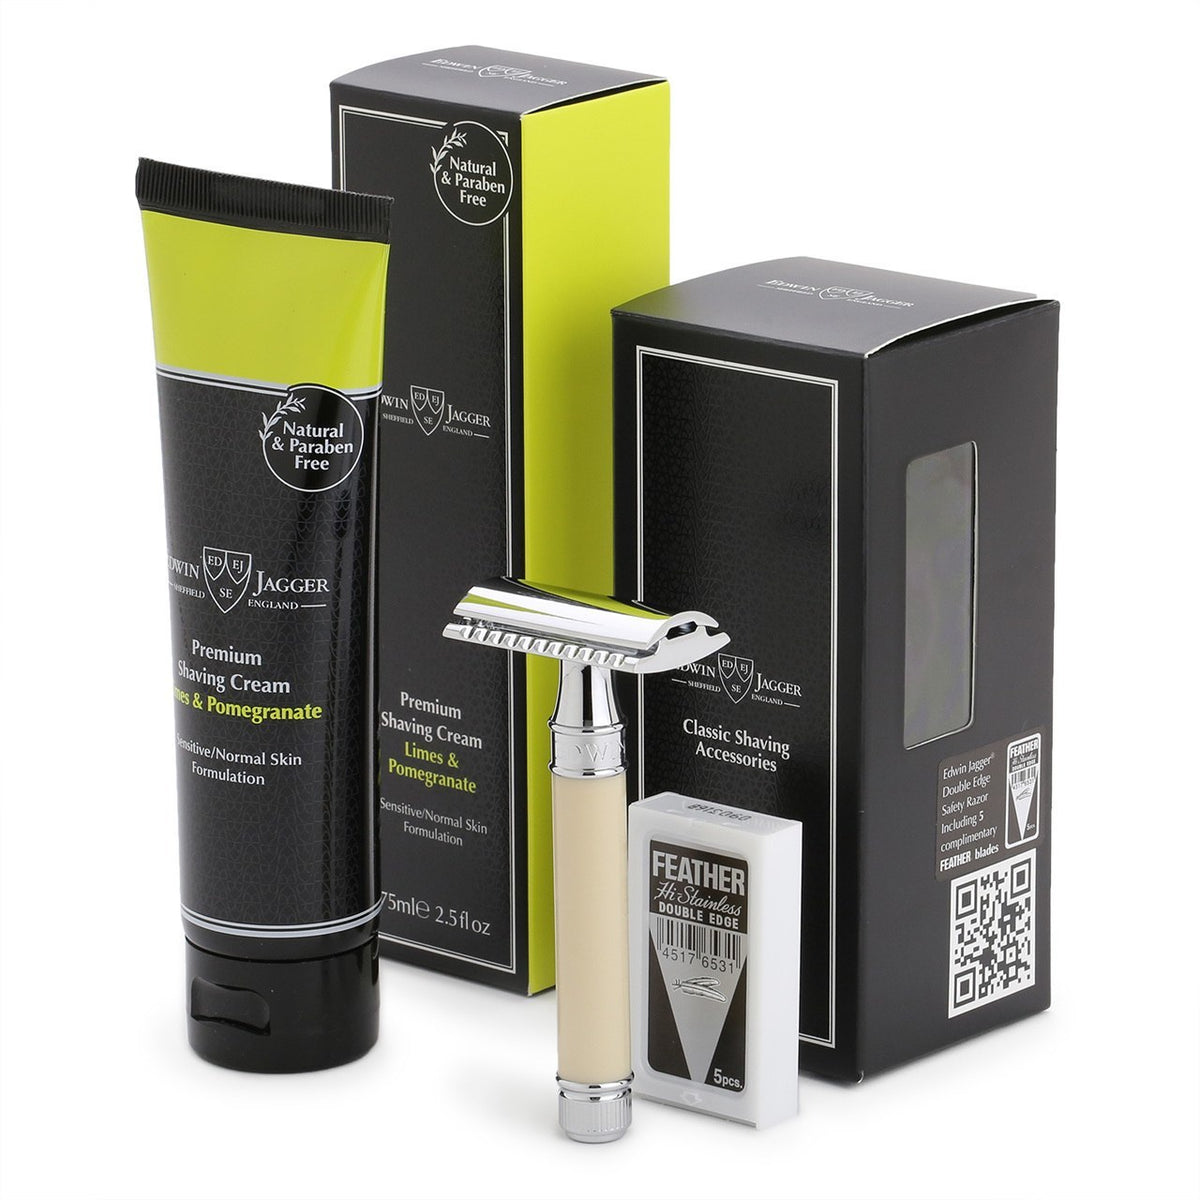 Edwin Jagger DE86 Ivory Razor & Limes and Pomegranate Shave Cream Set